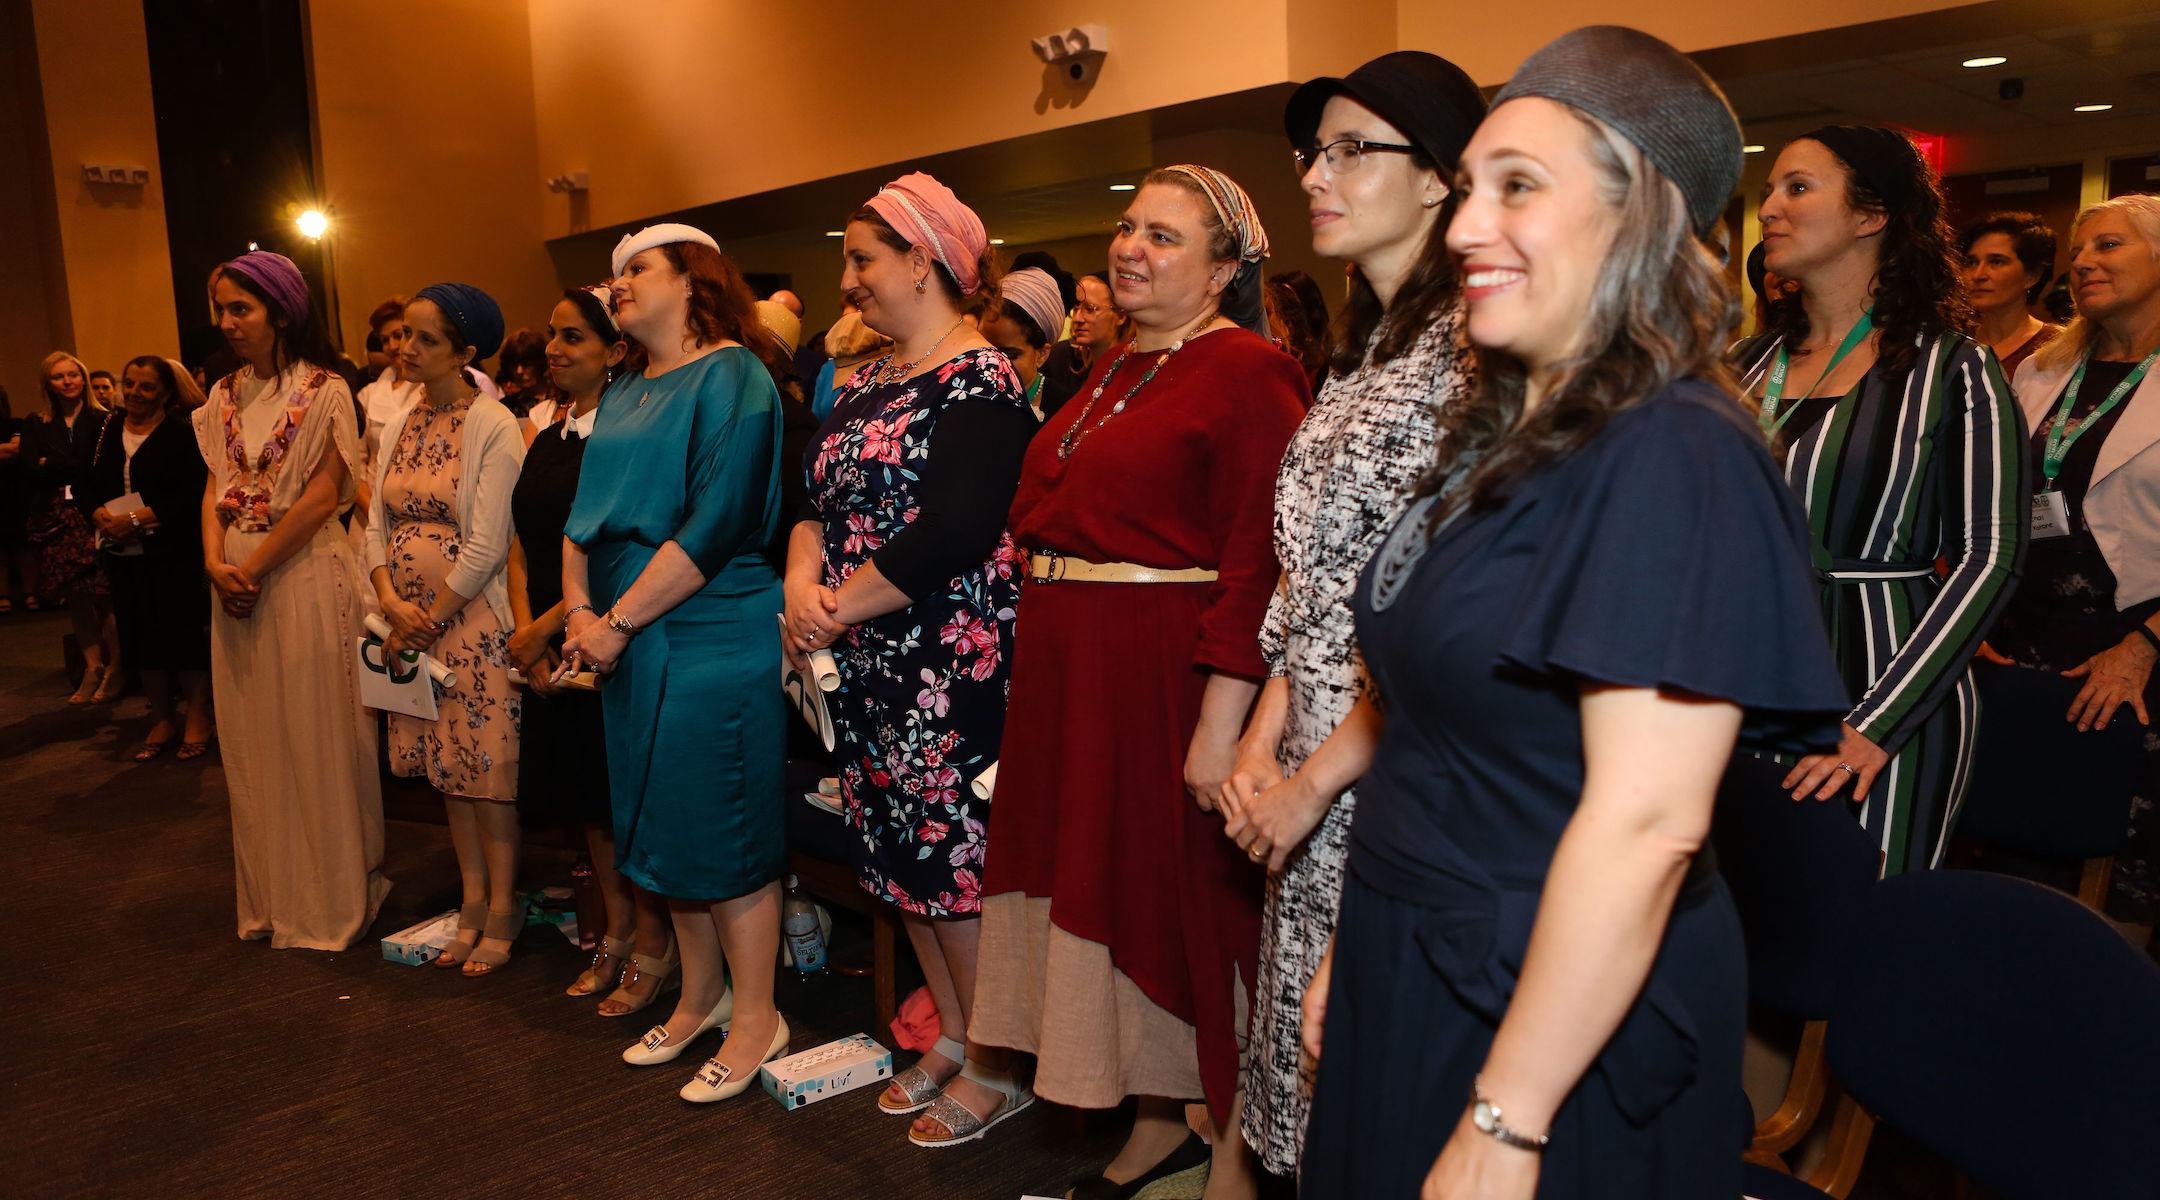 Yeshivat Maharat students attend a graduation ceremony in New York, June 17, 2019. (JTA/Shulamit Seidler-Feller/Yeshivat Maharat)